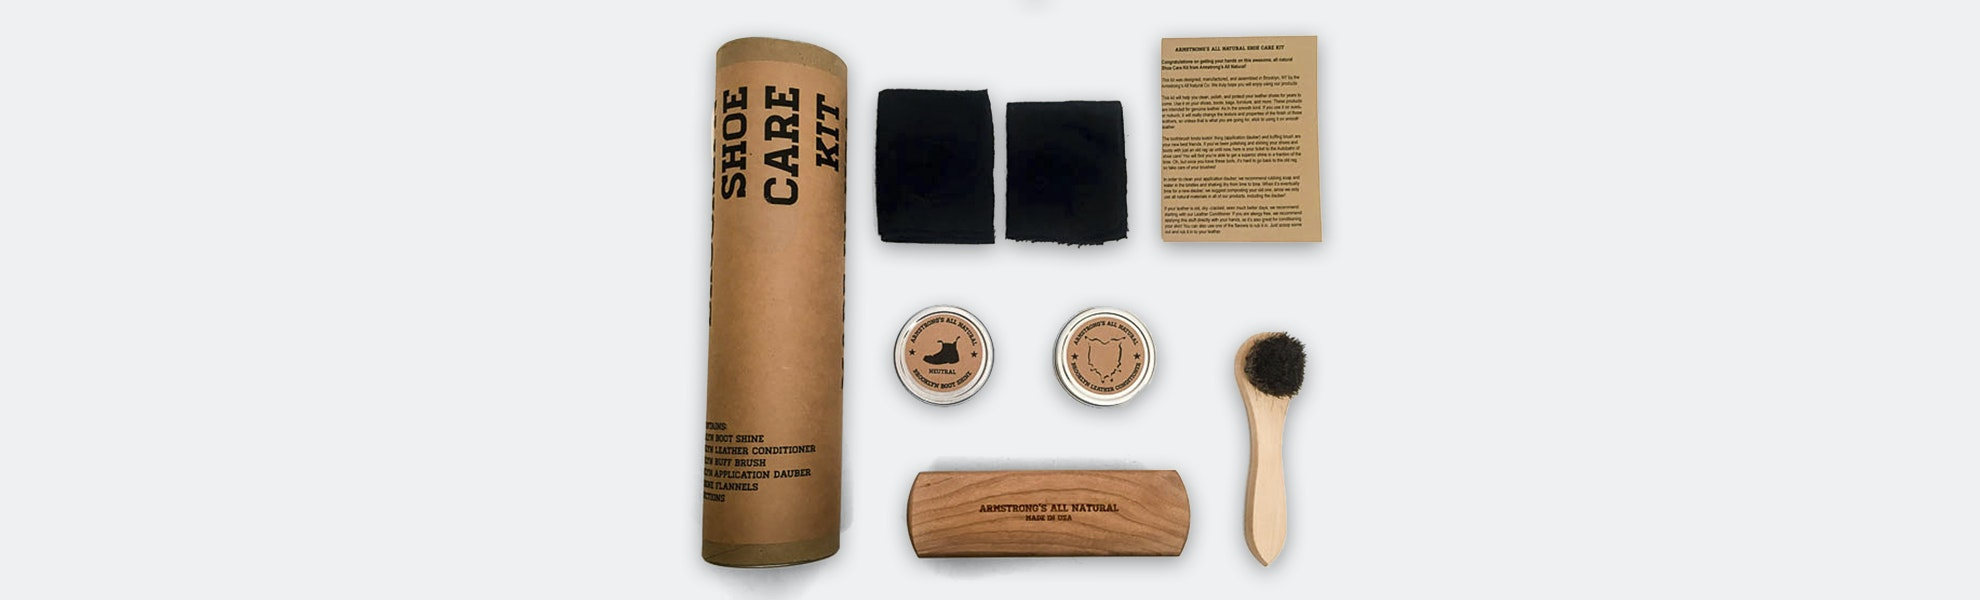 Armstrong's All Natural Leather/Shoe Care Kit